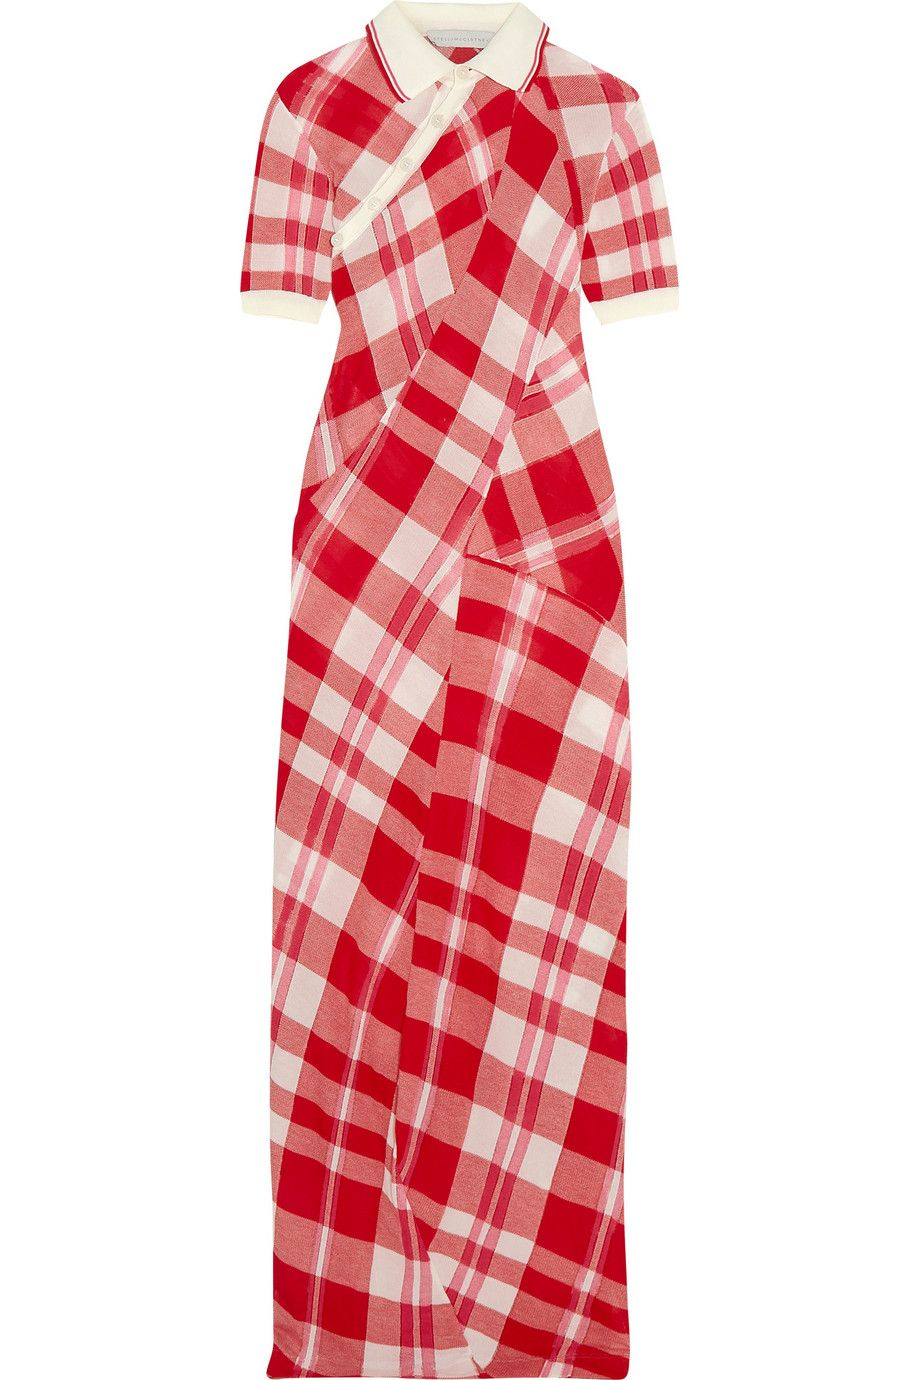 Stella McCartney | Checked knitted cotton maxi dress | NET-A-PORTER.COM